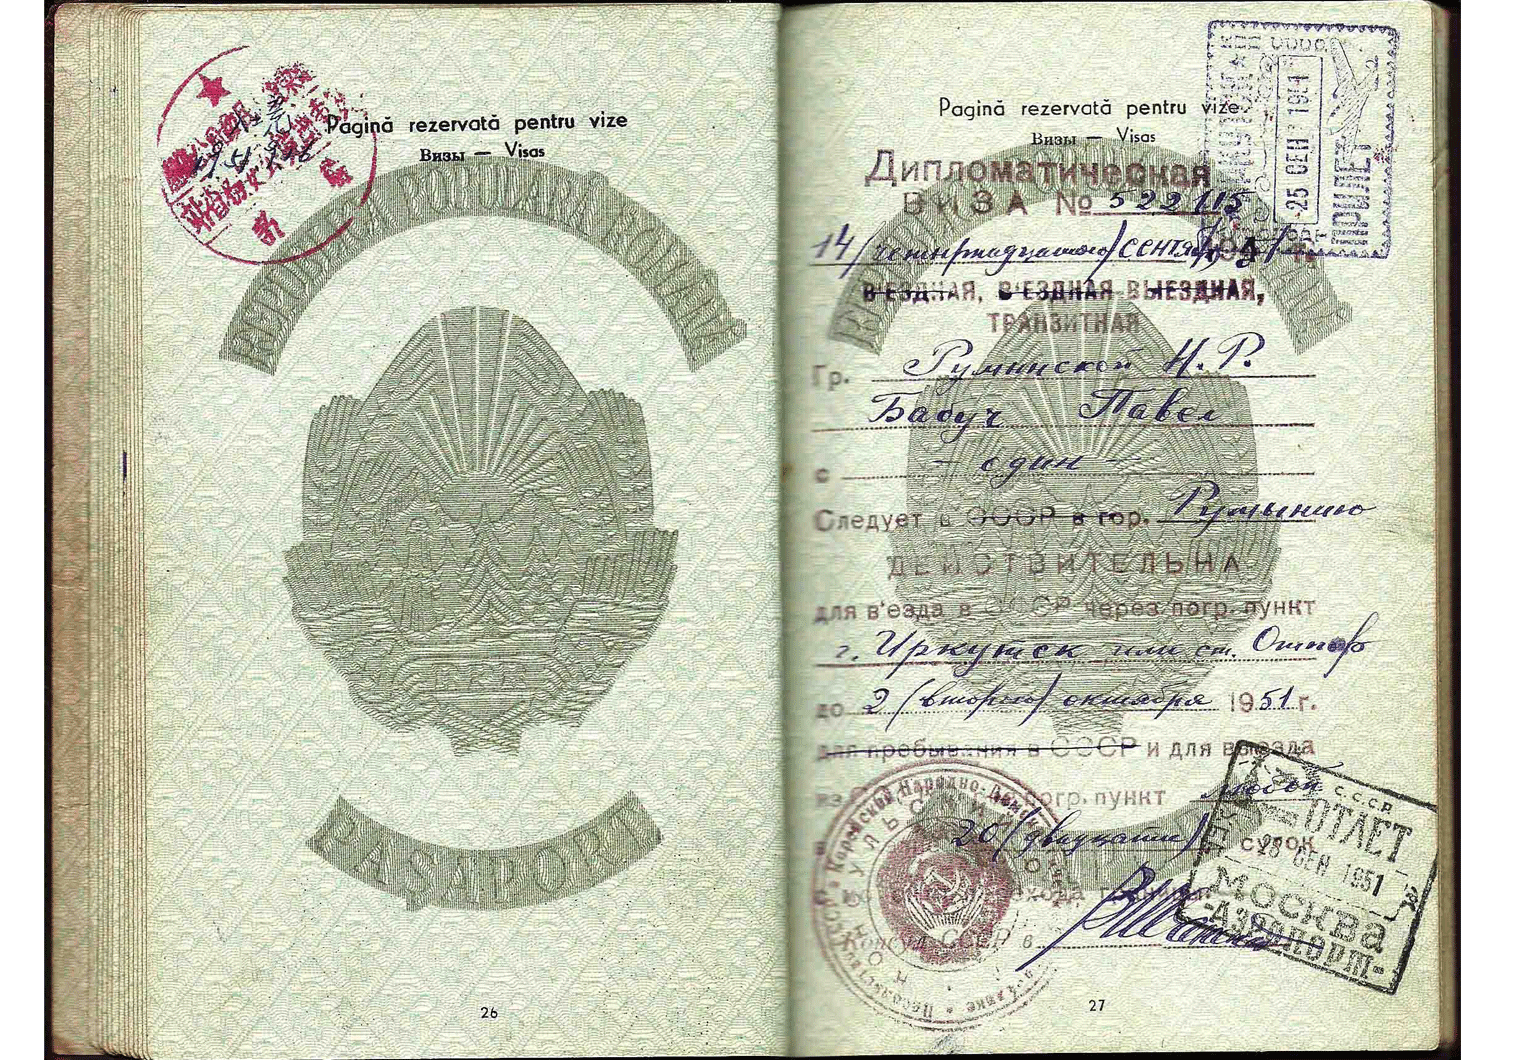 1951 Soviet diplomatic visa inside a passport for North Korea